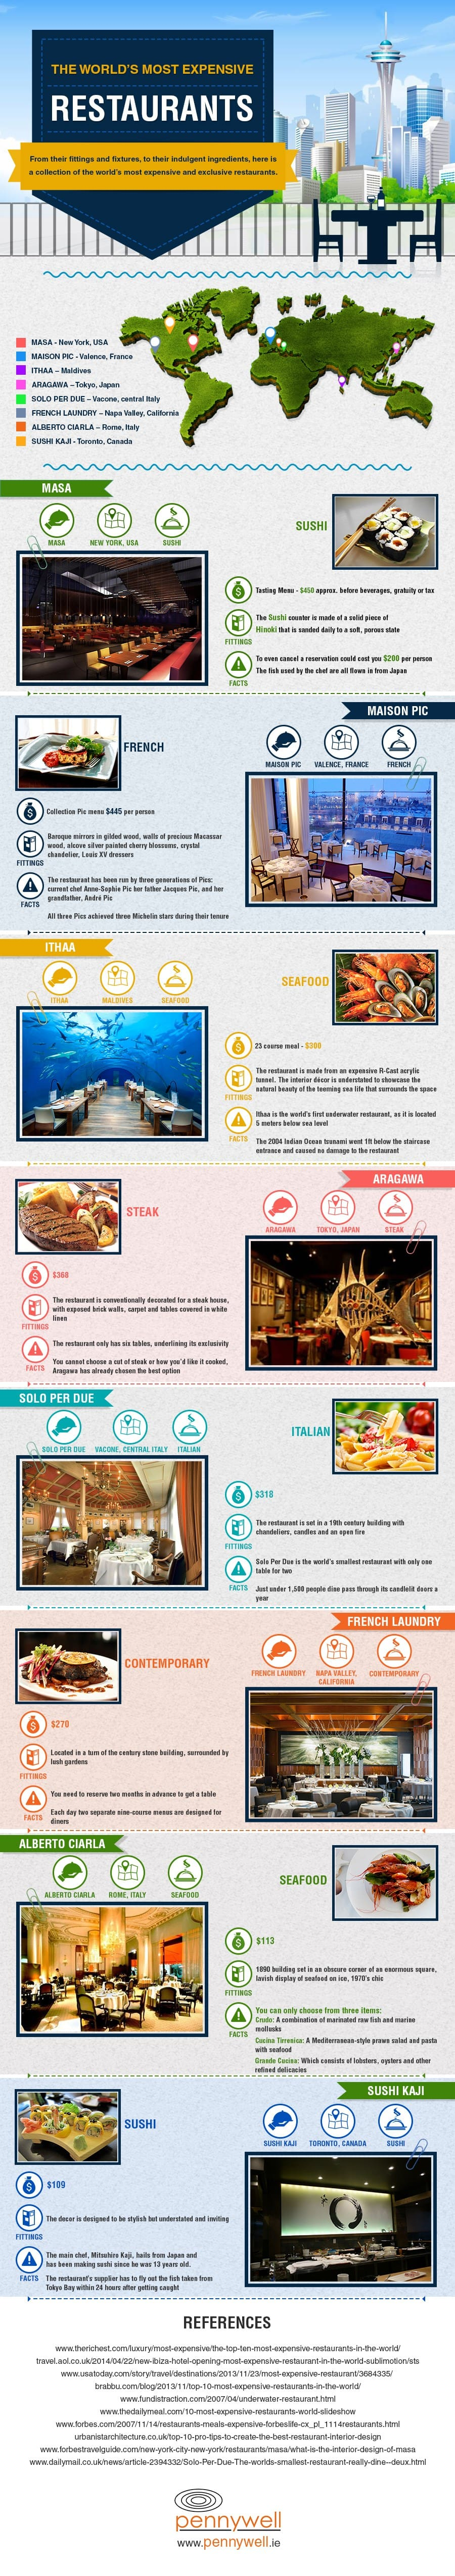 Expensive-Restaurants-Infographic